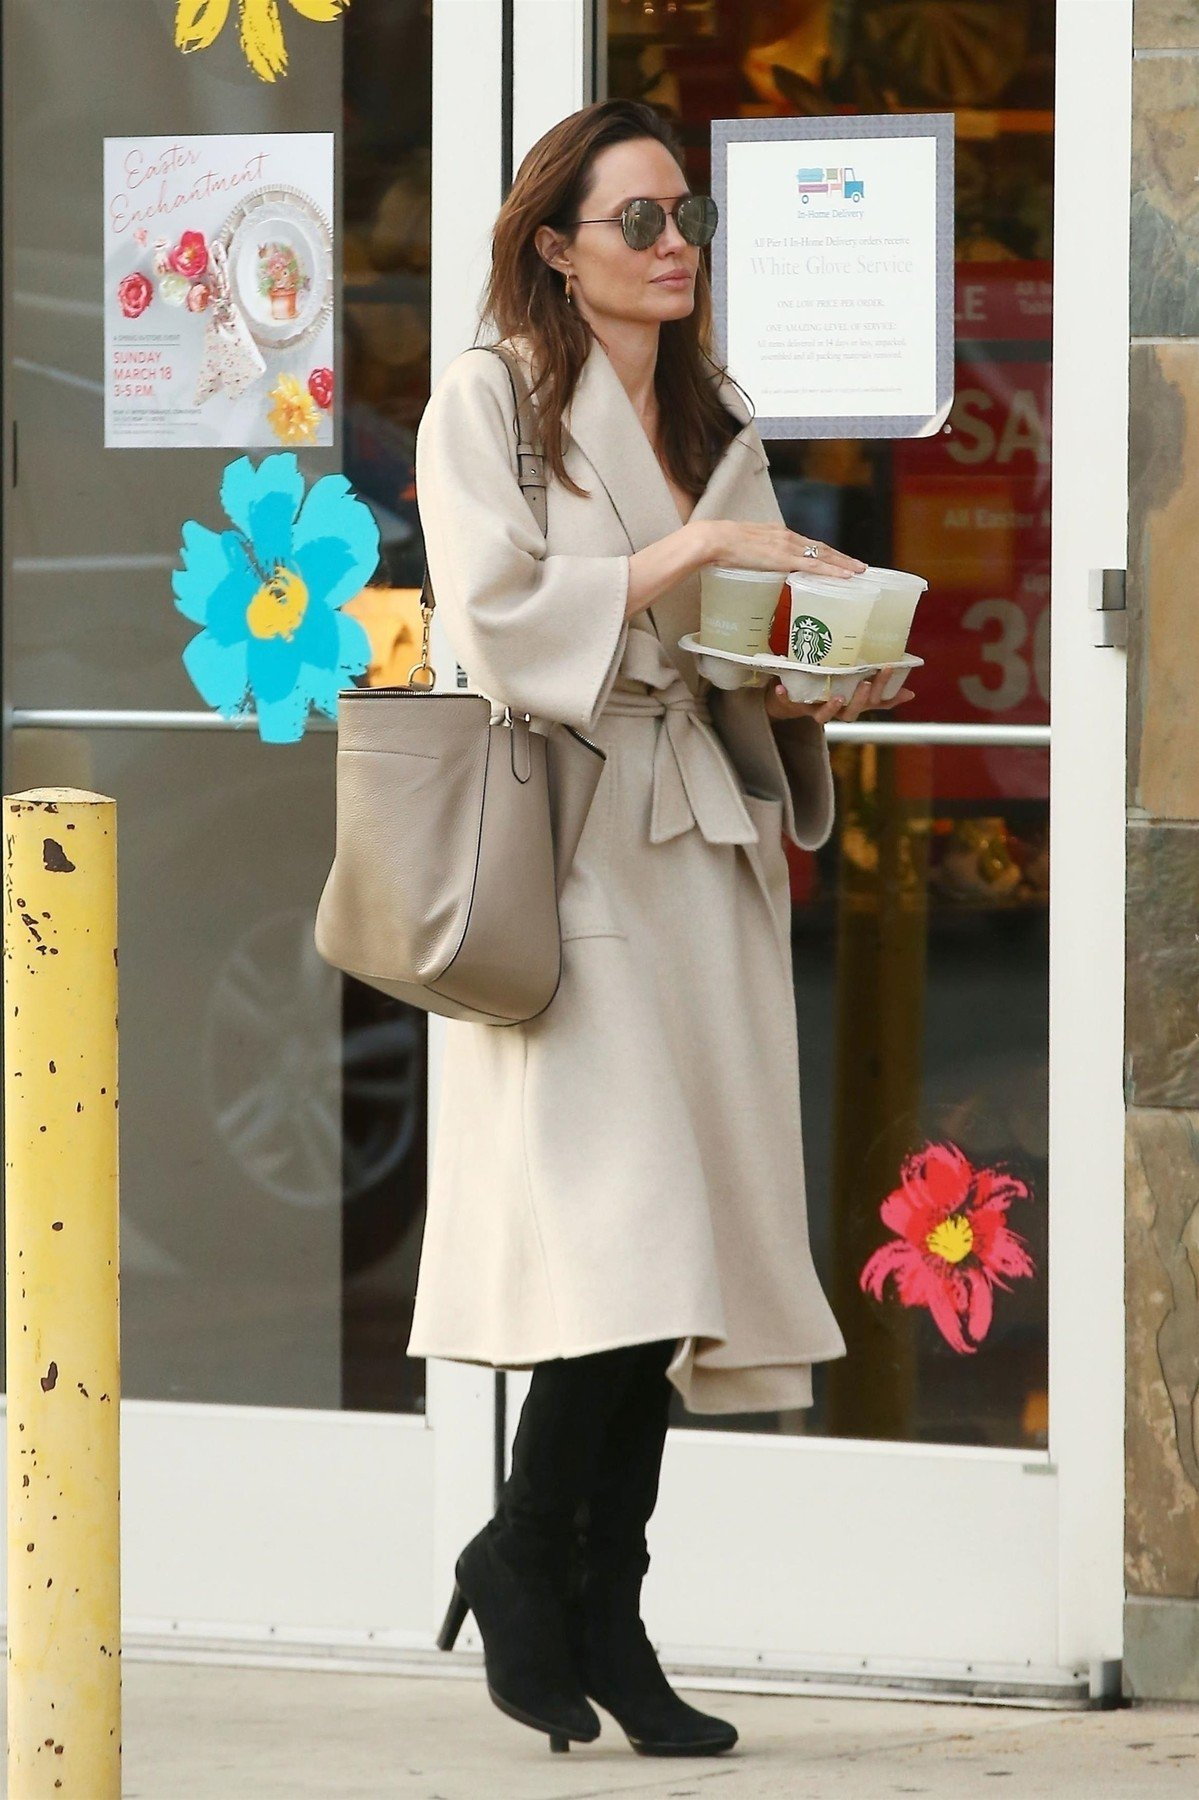 Studio City, CA  - *EXCLUSIVE*  - Actress Angelina Jolie was spotted while out with her daughters Vivienne and Zahara shopping around Studio City. They were seen with bags from Papyrus, Starbucks and Paper Source during their fun family outing. *Shot on 03/11/18*  Pictured: Angelina Jolie    *UK Clients - Pictures Containing Children Please Pixelate Face Prior To Publication*, Image: 365930135, License: Rights-managed, Restrictions: , Model Release: no, Credit line: Profimedia, AKM-GSI